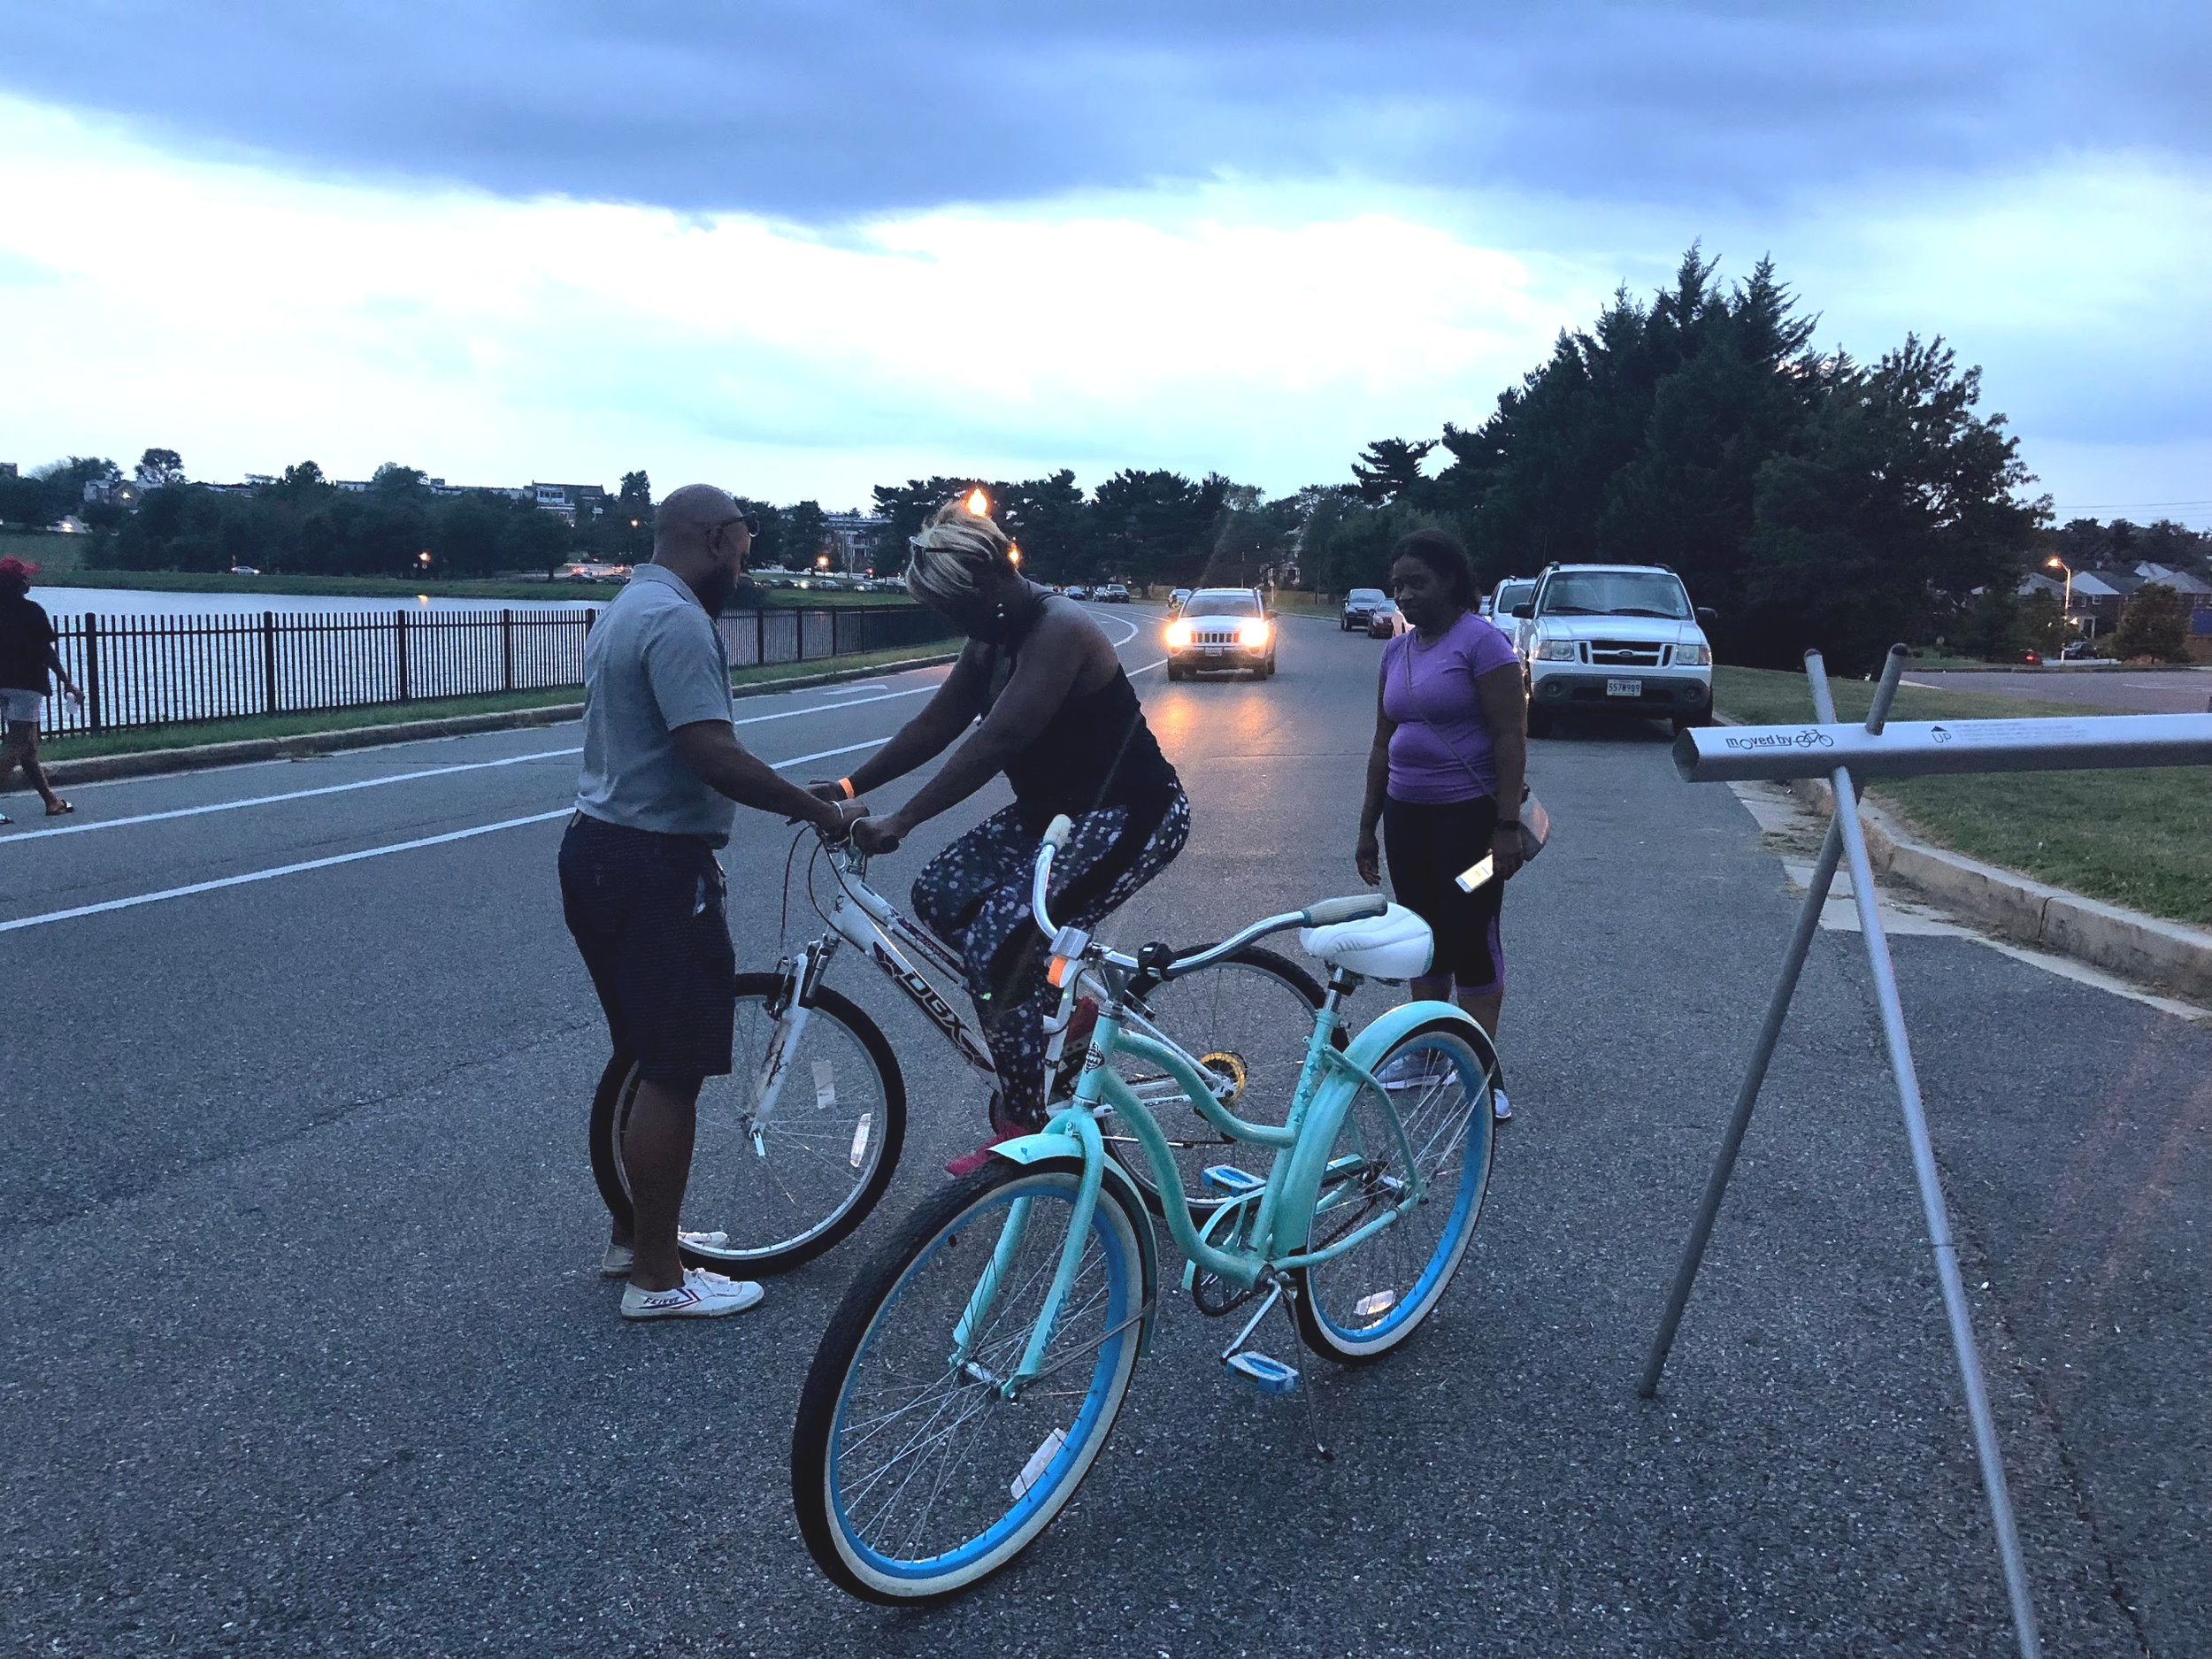 Our new Mobile Bike Shop Coordinator Menelik helped make sure her bike fit properly after we made repairs.